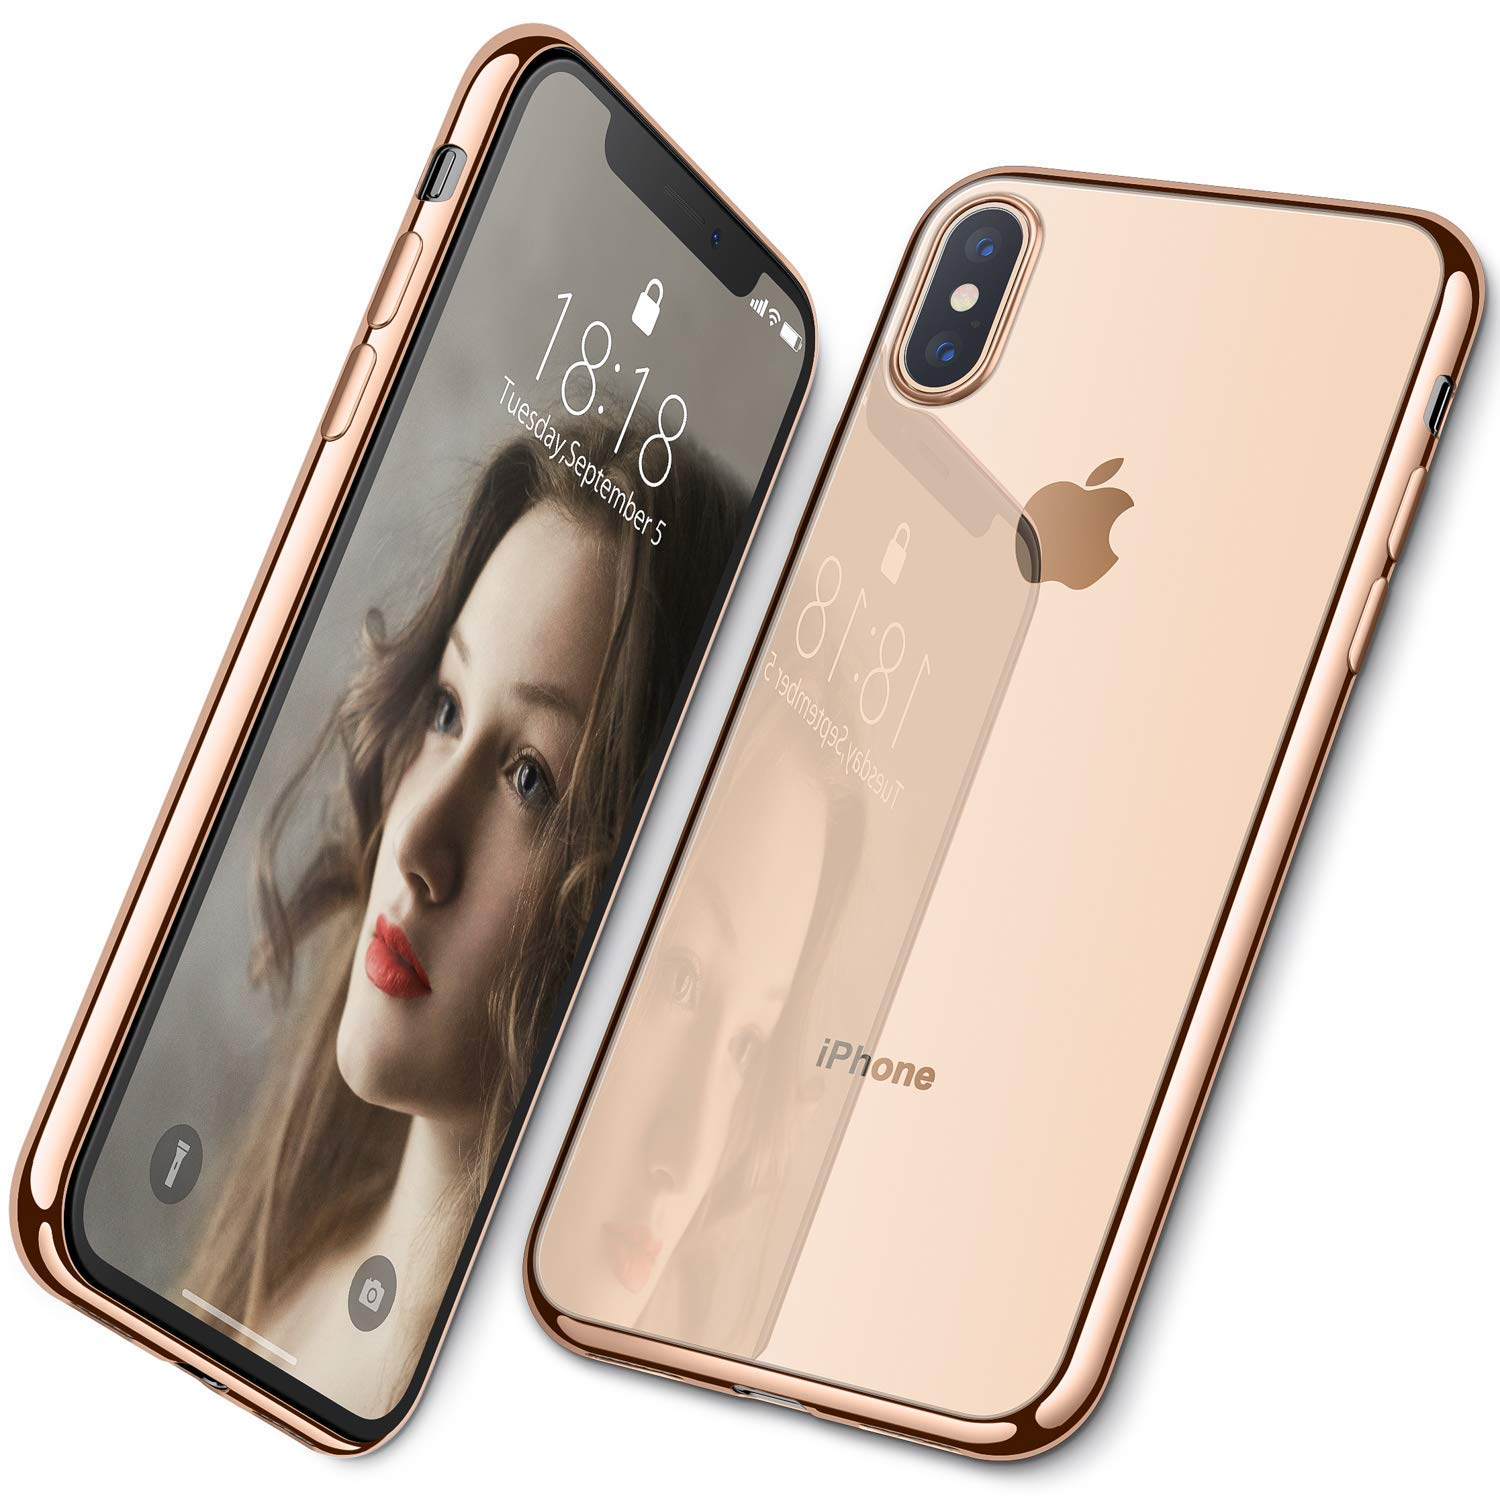 Für <font><b>iPhone</b></font> <font><b>XS</b></font> <font><b>Max</b></font> <font><b>XS</b></font> XR Fall, WEFOR Ultra Slim Thin Klar Weiche Premium Flexible Chrome Bumper Transparent TPU Zurück Platte Abdeckung image